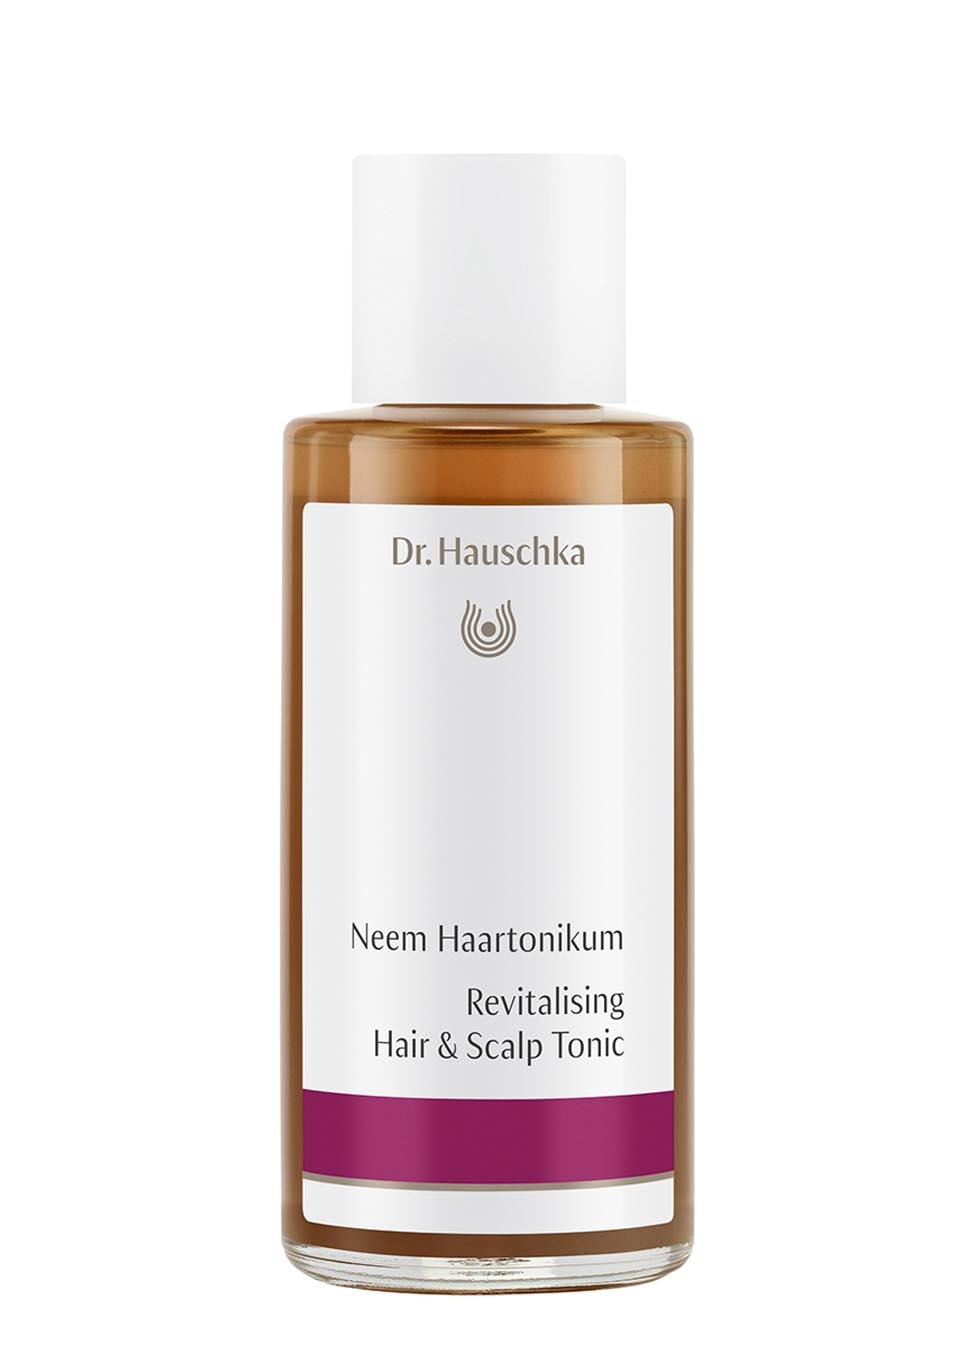 Dr Hauschka Revitalising Hair & Scalp Tonic, £18.50